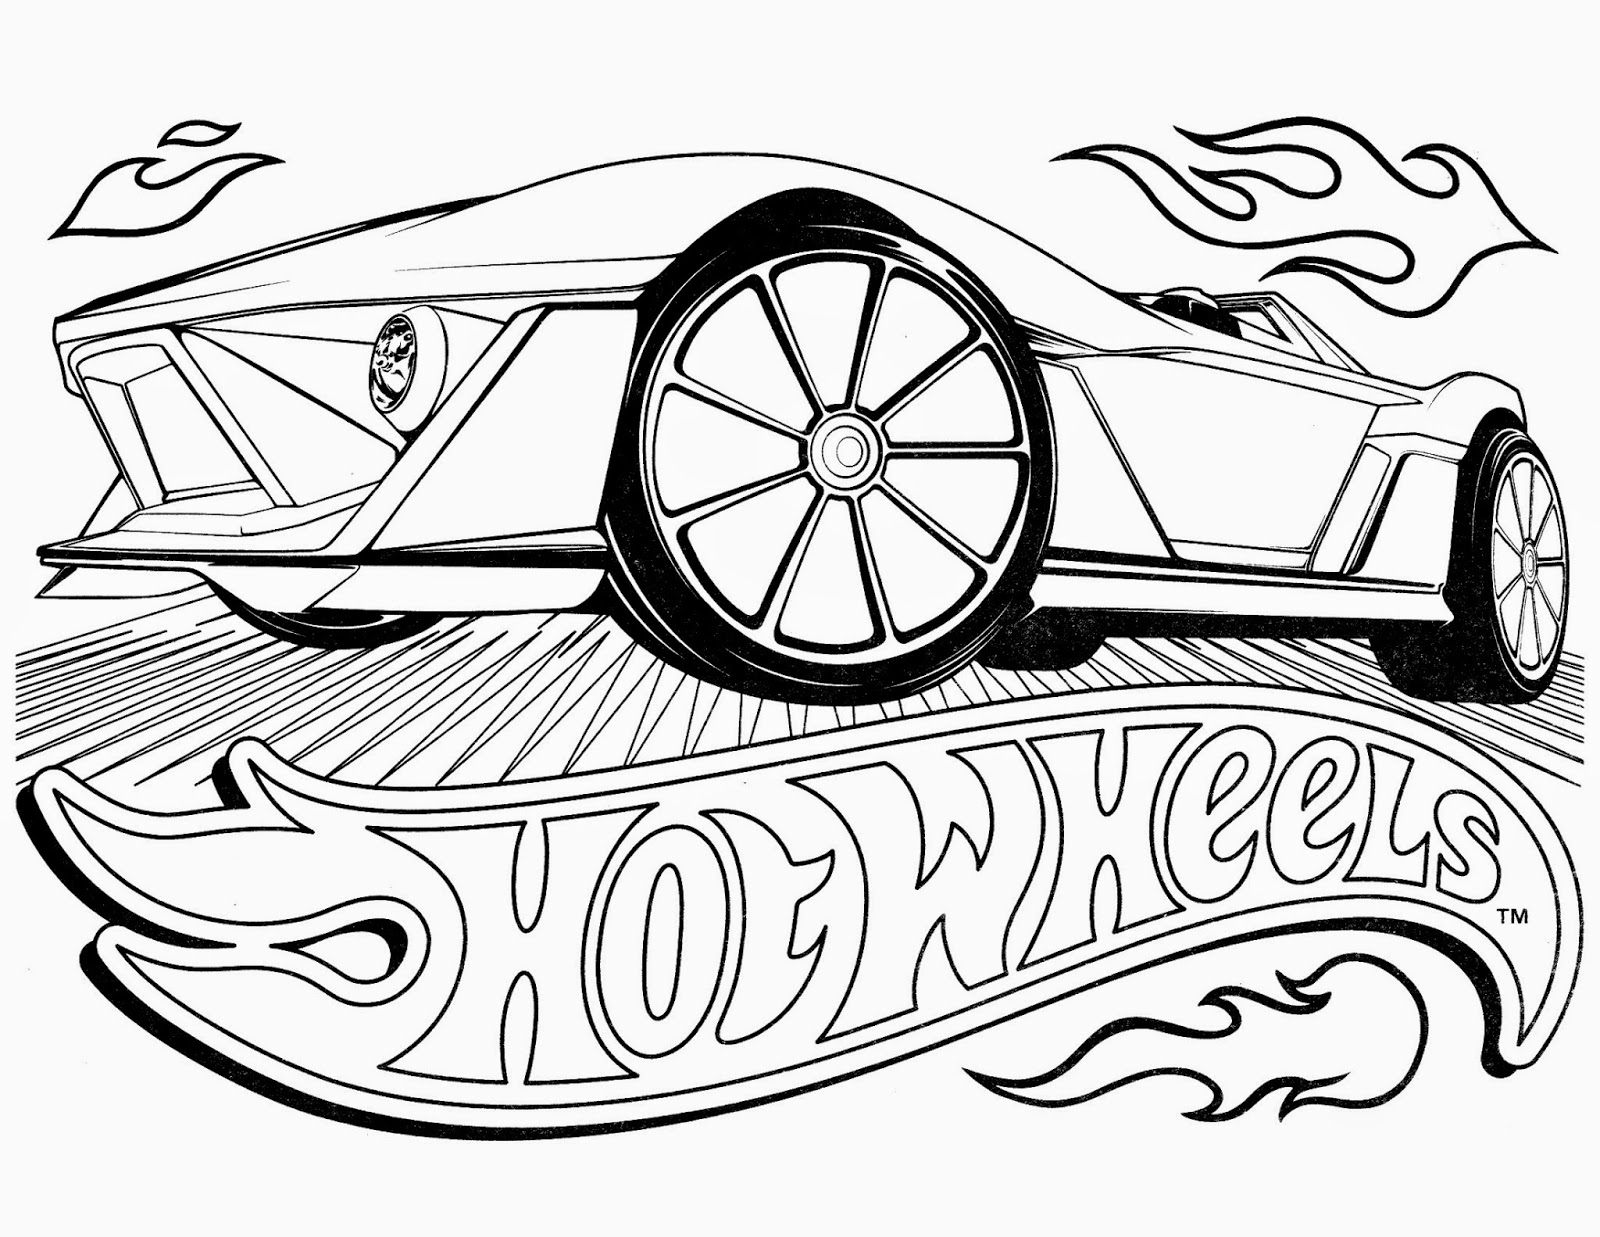 hotwheels coloring pages free printable hot wheels coloring pages for kids pages hotwheels coloring 1 1